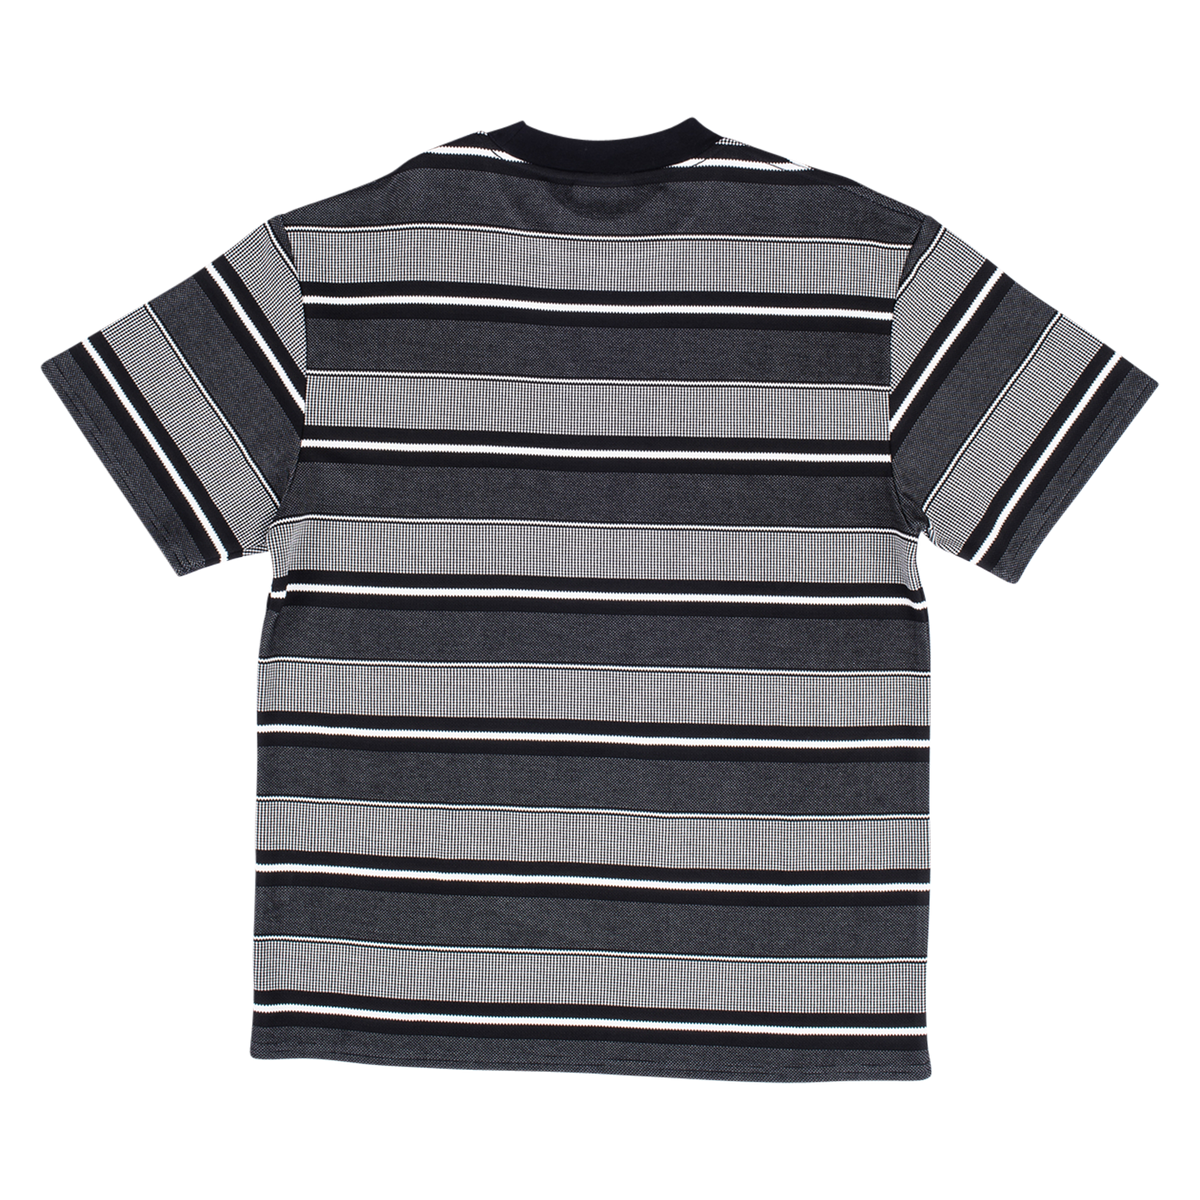 Flavors Striped Premium T-Shirt - Black